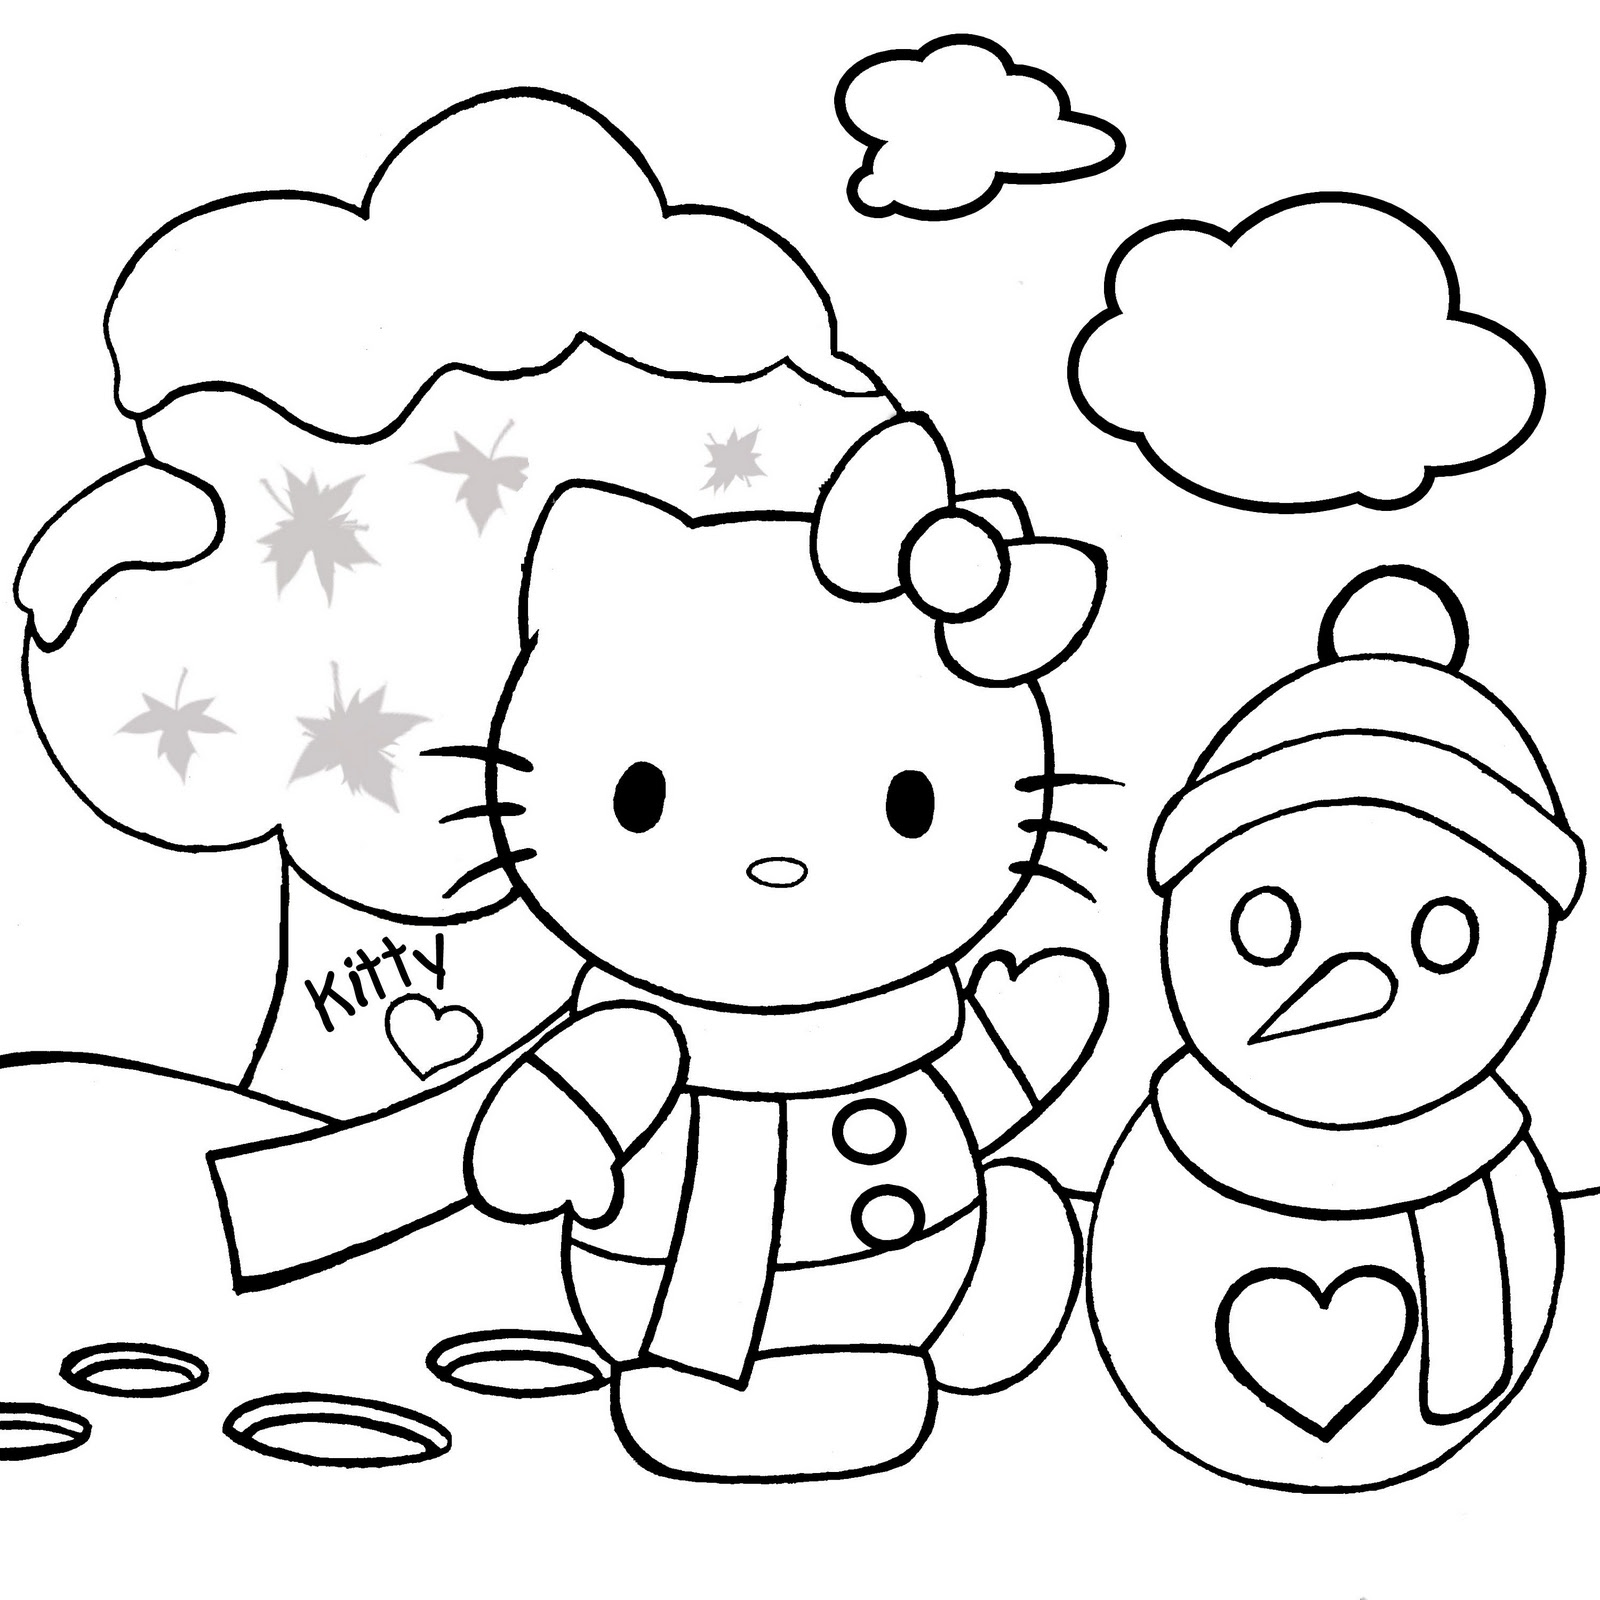 1600x1600 christmas printable coloring pages 1600x1600 line drawing